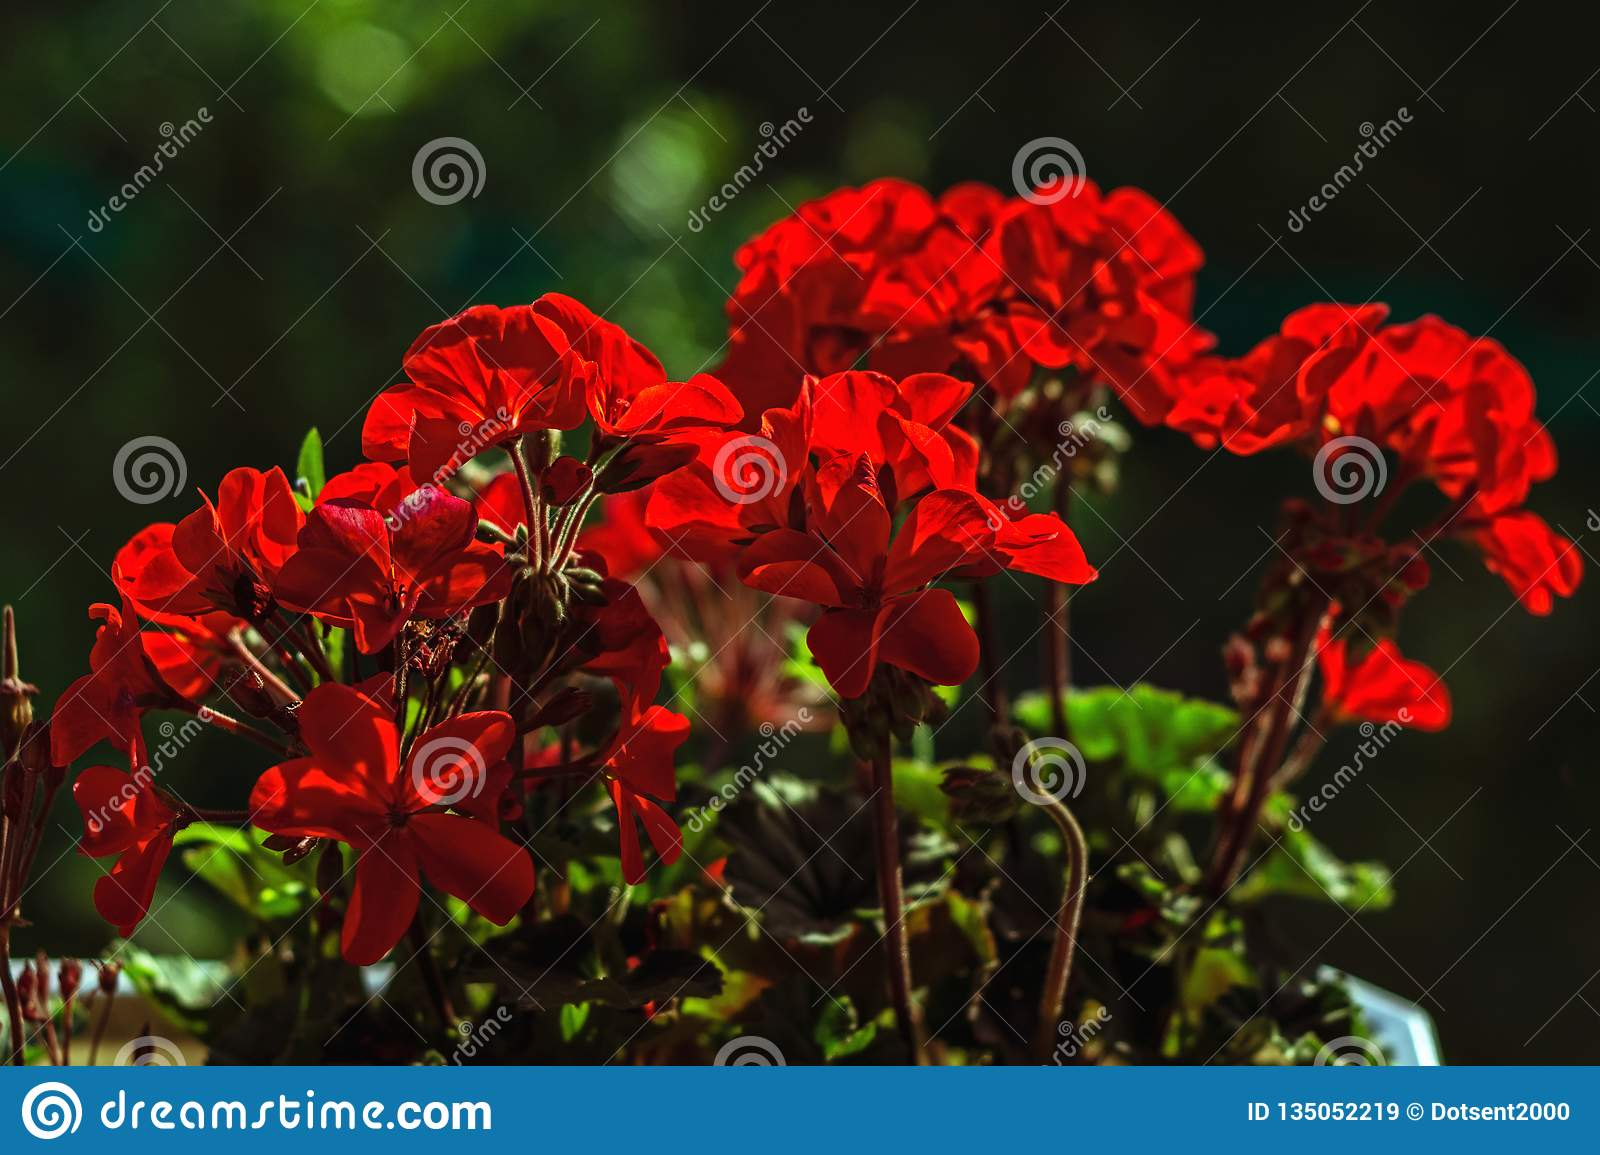 Bright Geranium flowers